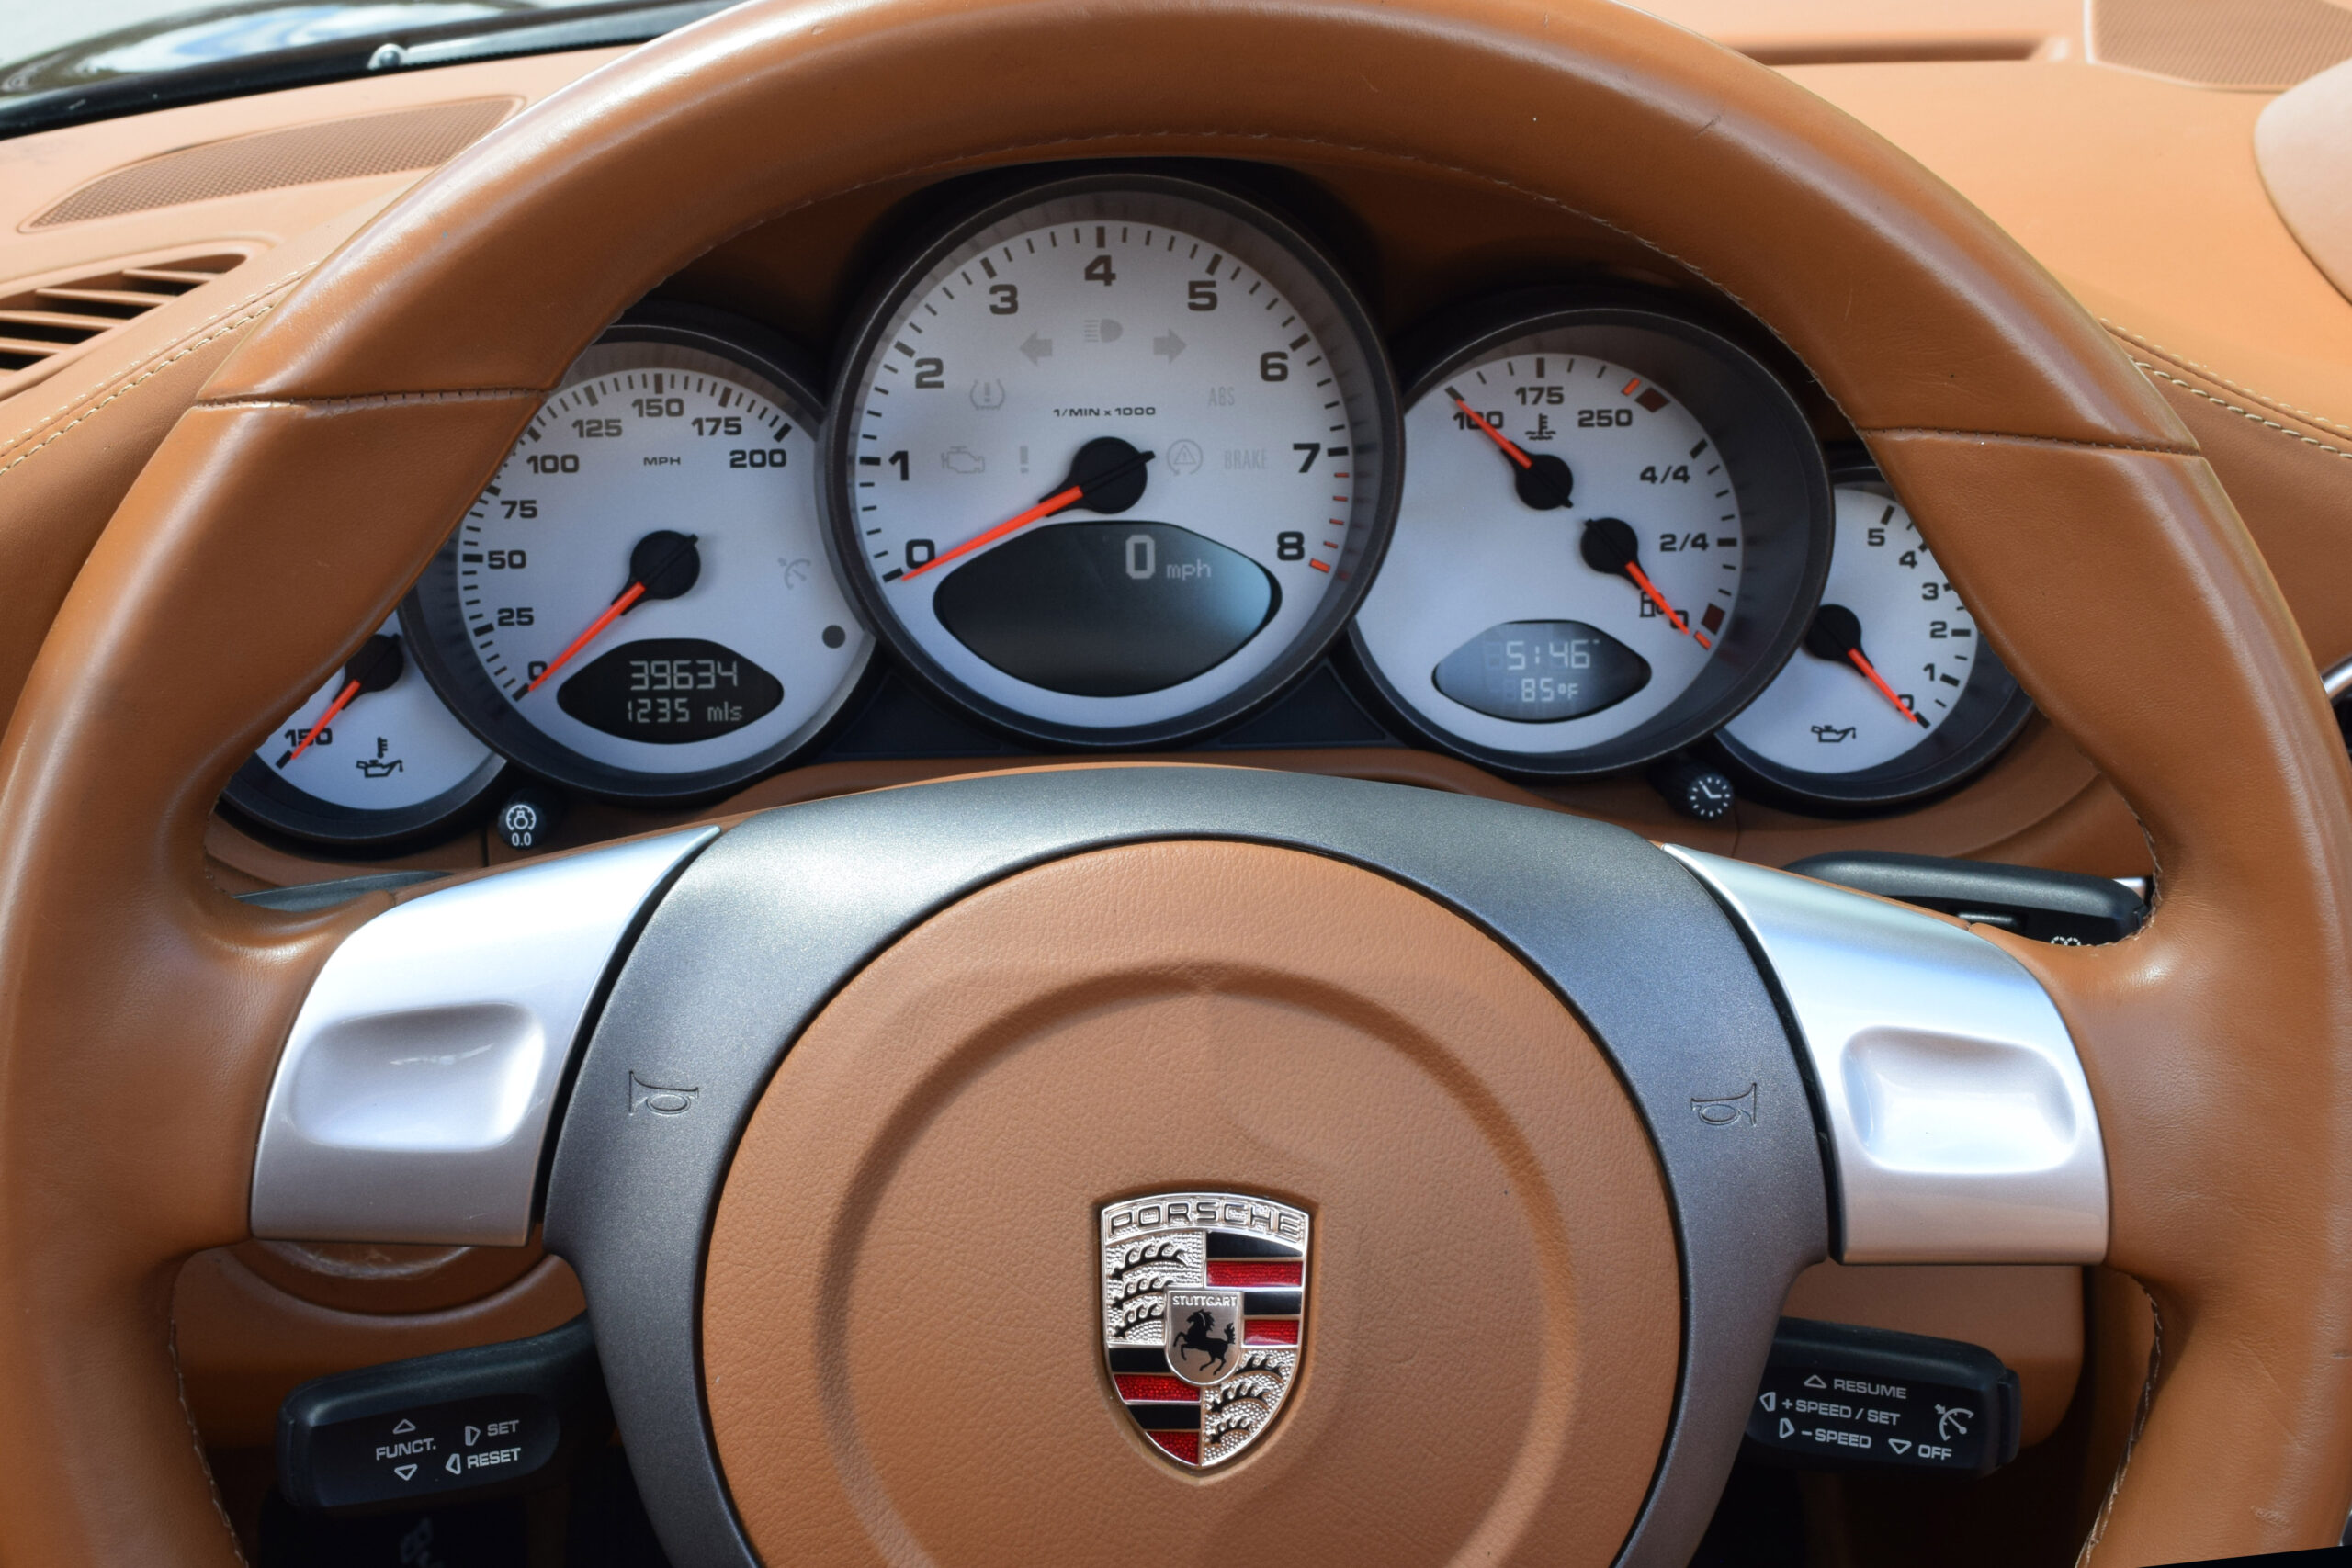 2008 997 Carrera 4S, 6-Speed, Desirable 3.8L engine, Low Miles, Sport Chrono, Brown Natural Full leather